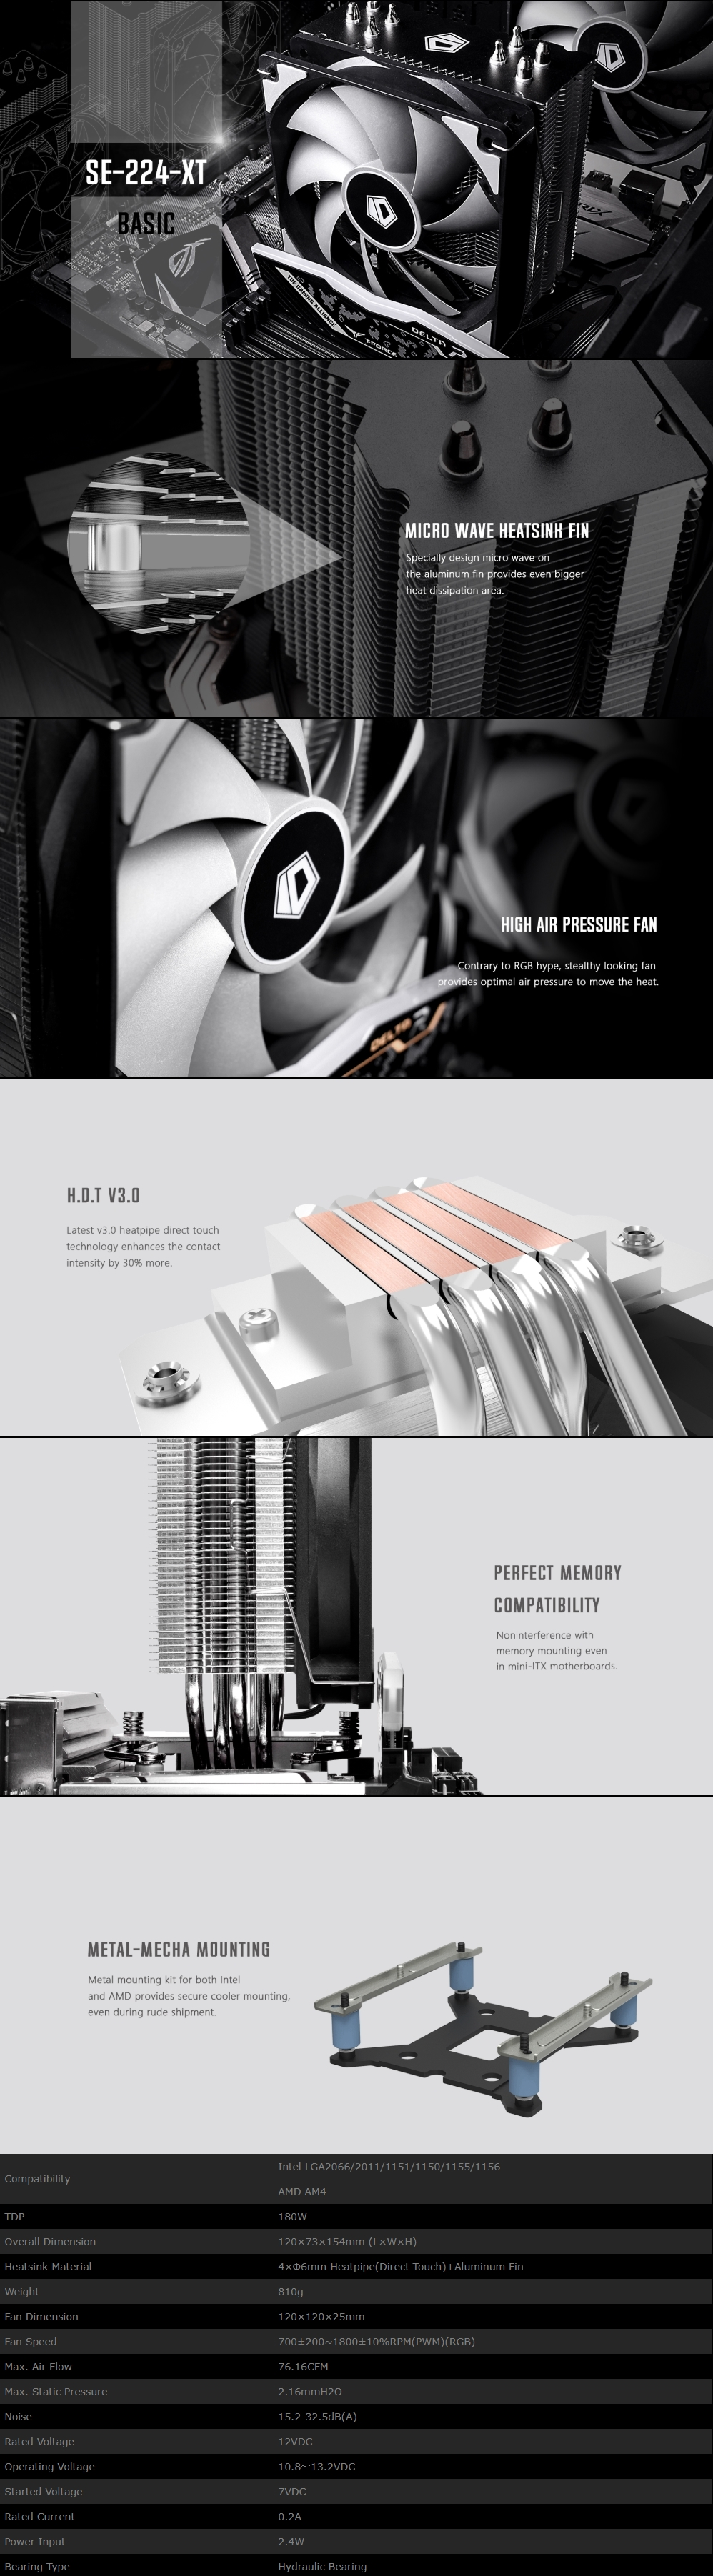 A large marketing image providing additional information about the product ID-COOLING Sweden Series SE-224-XT CPU Cooler - Additional alt info not provided